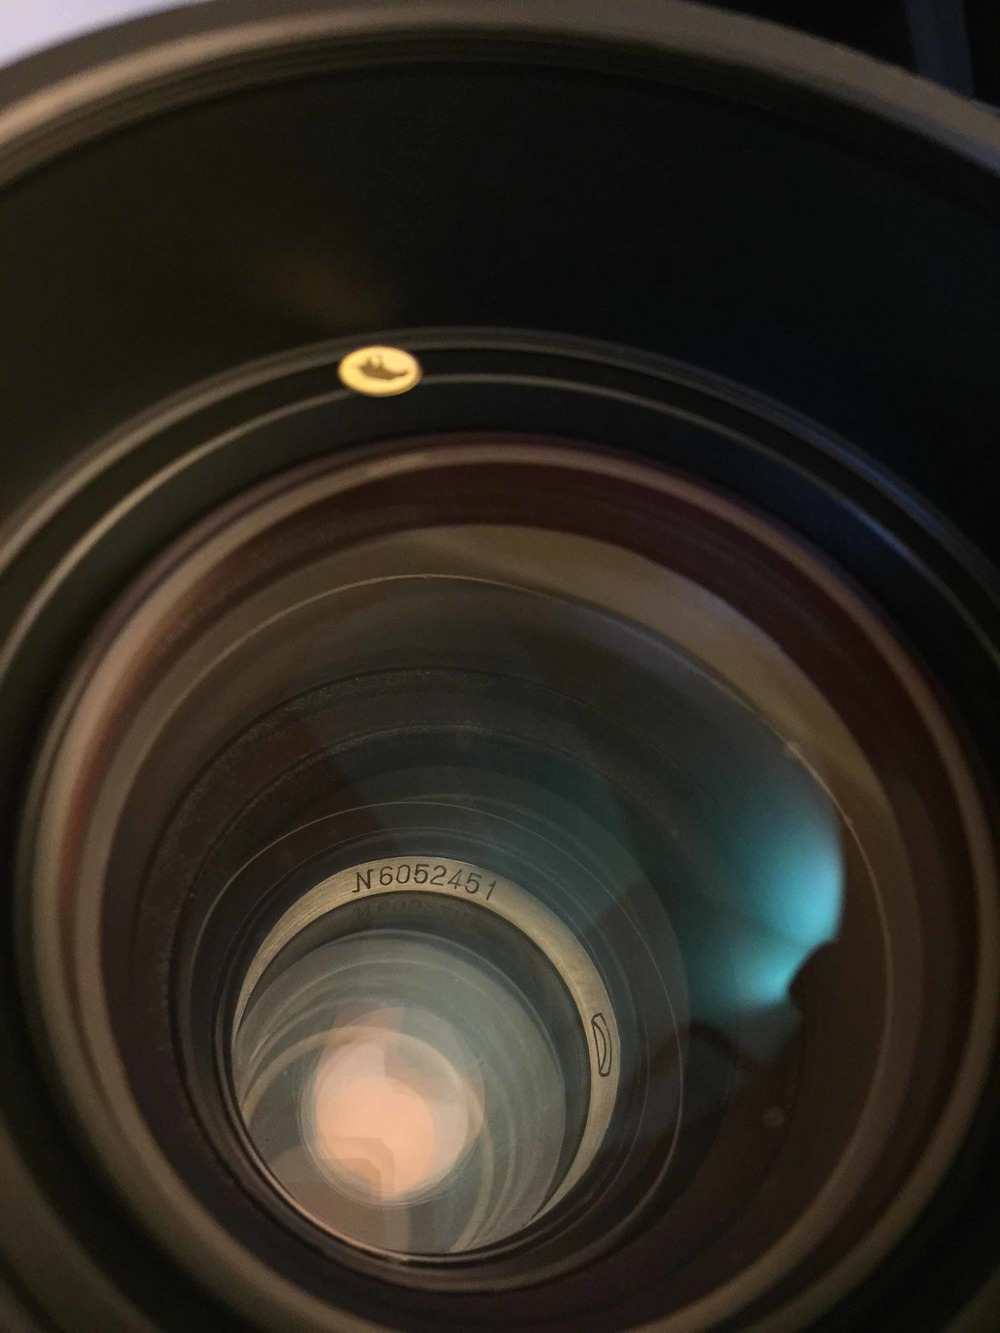 The core of the Trump are old School Helios 44-2 lenses.